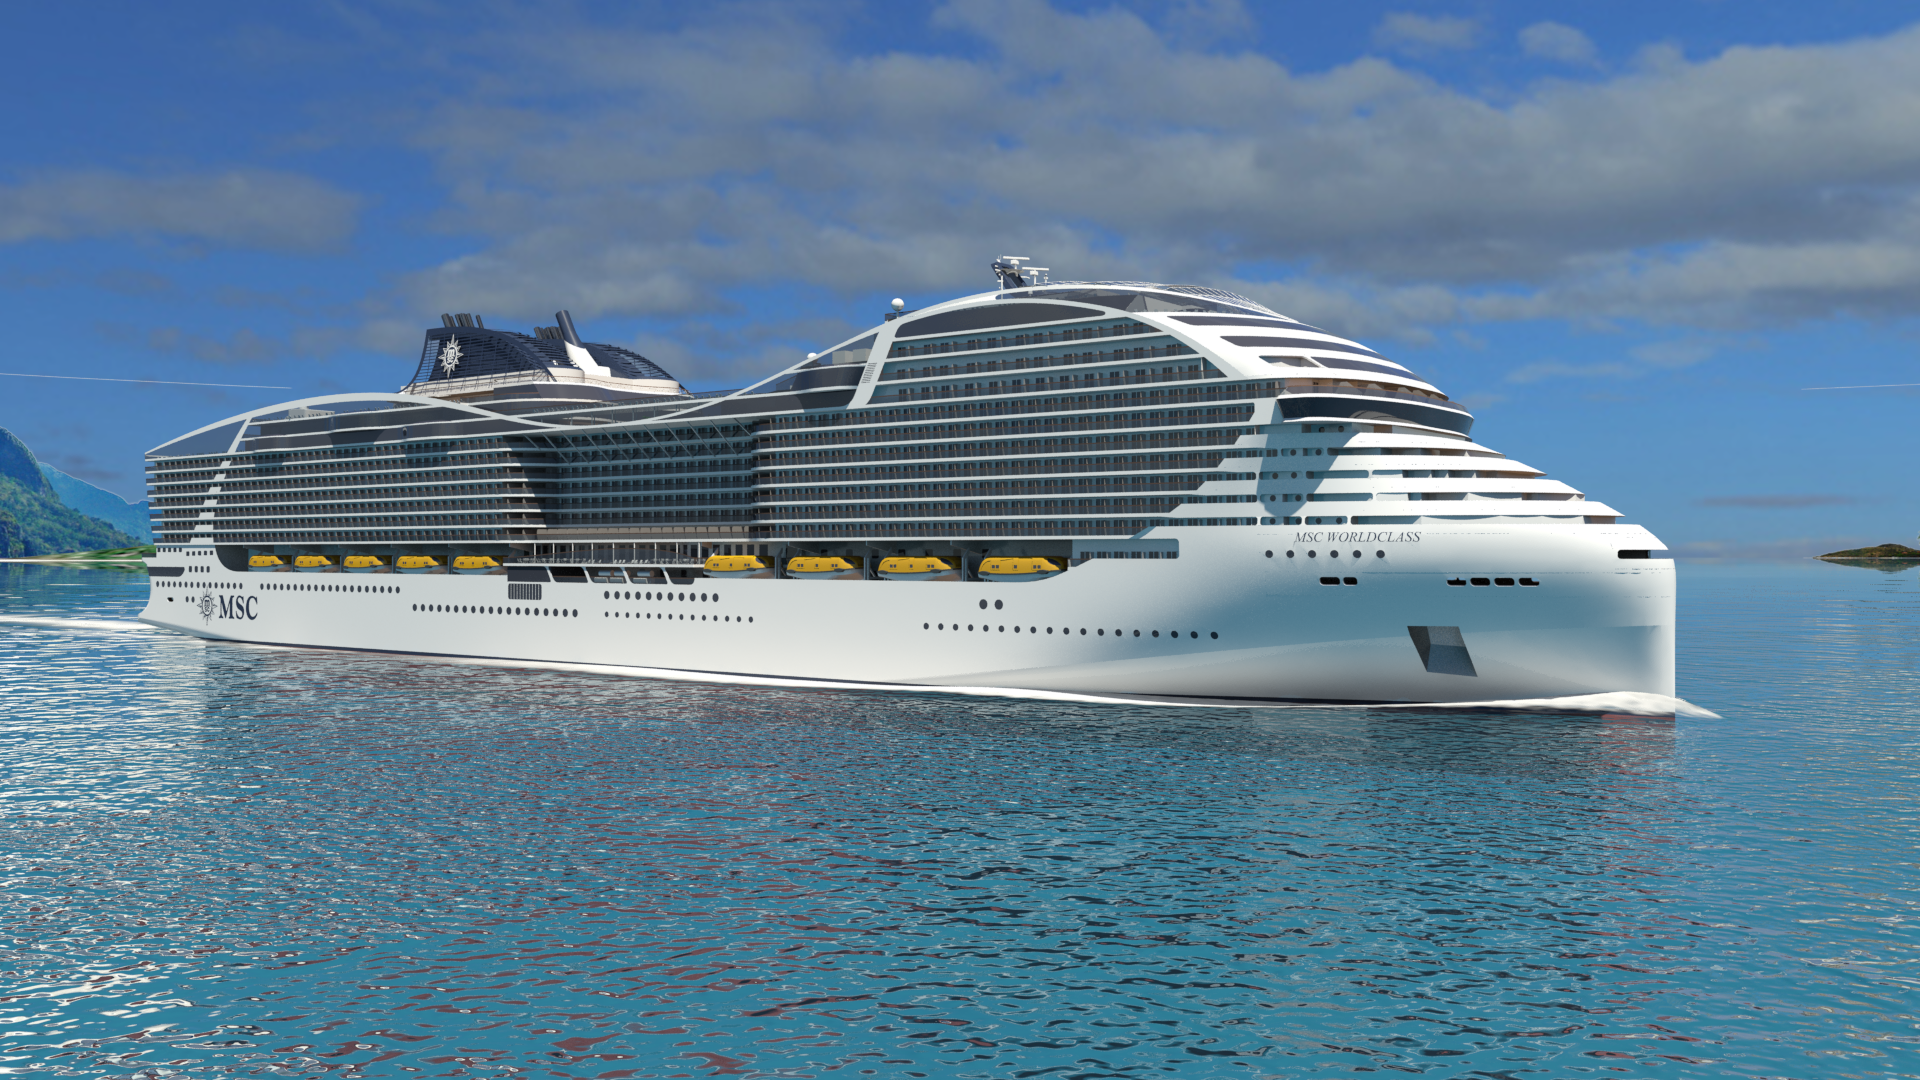 MSC To Launch First Worldclass Cruise Ship In Scott Sanfilippo - First cruise ship in the world